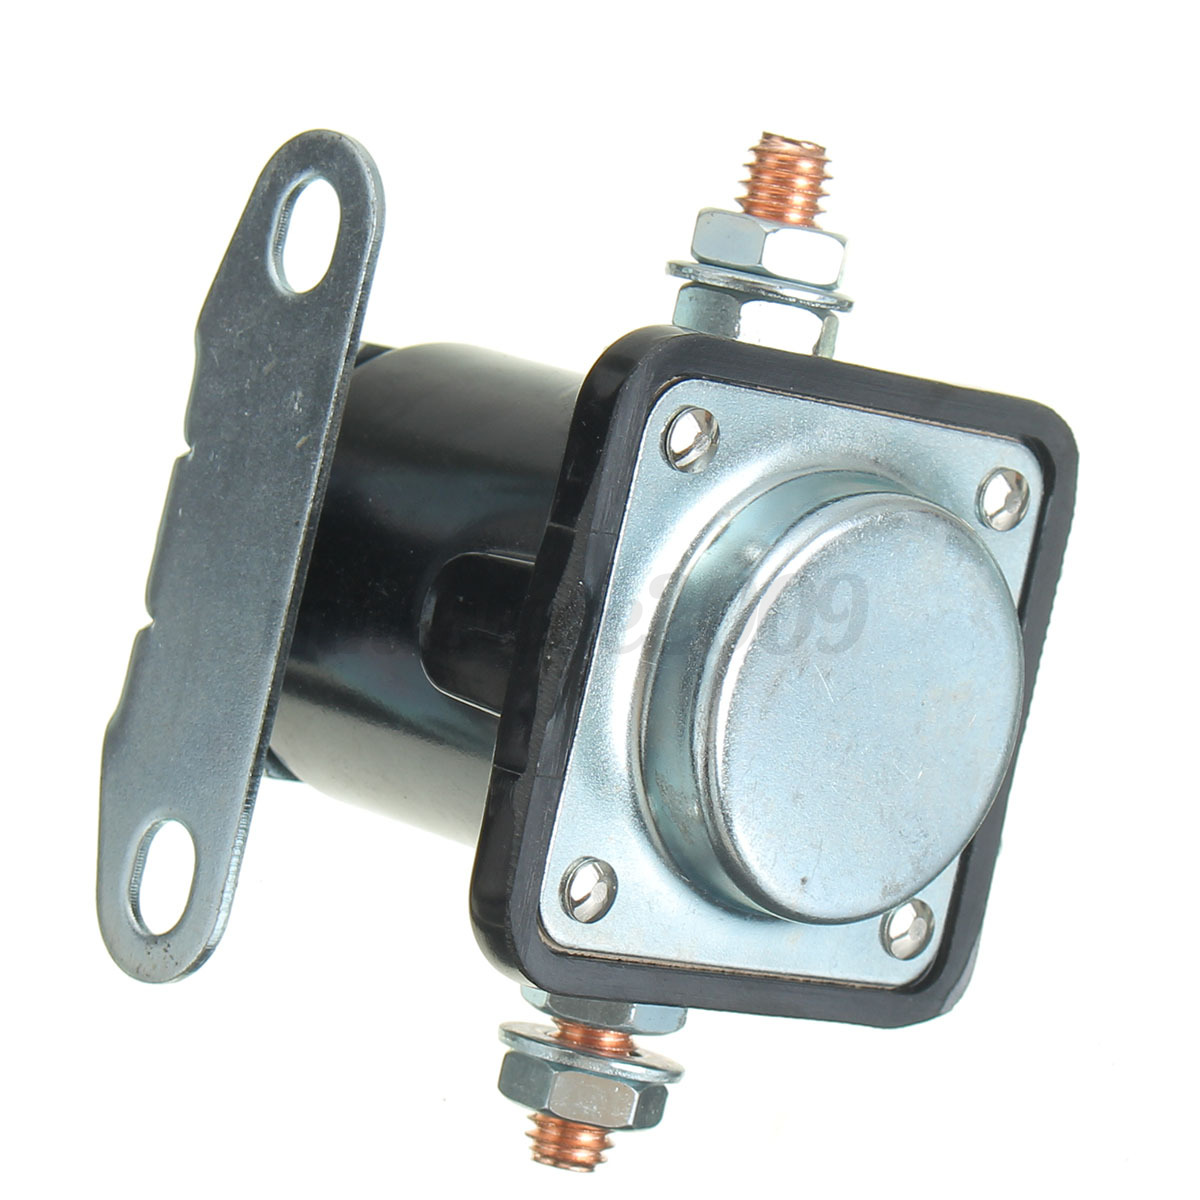 12V Starter System Solenoid Relay Contactor Switch Engine Part For ...